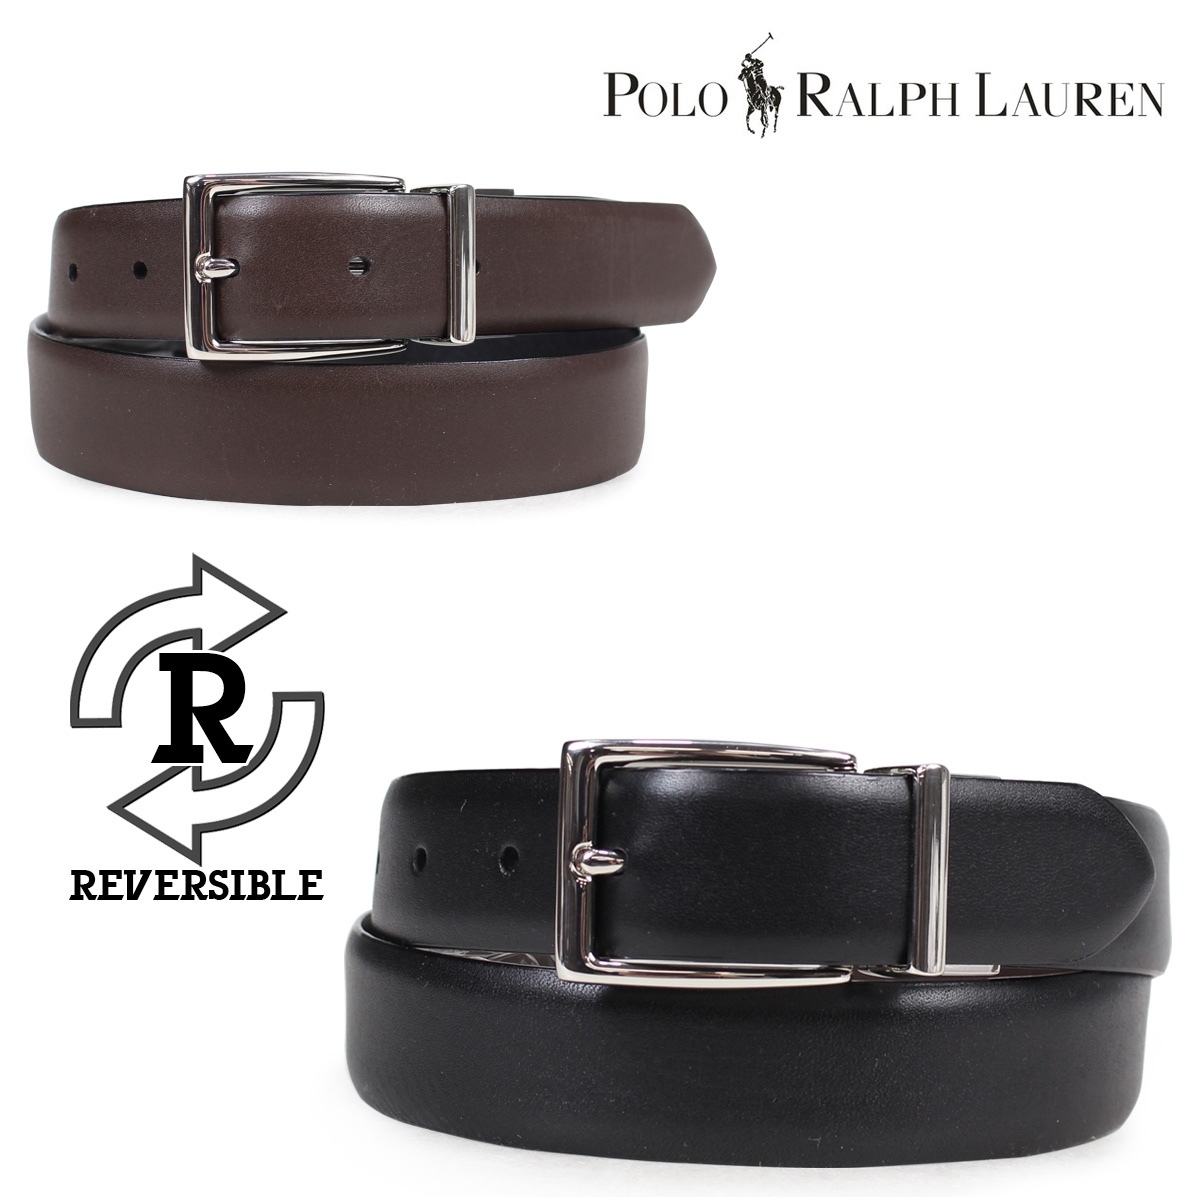 9a14356954a2 POLO RALPH LAUREN belt men genuine leather polo Ralph Lauren leather belt  reversible casual business black brown 405069544C8  3 26 Shinnyu load